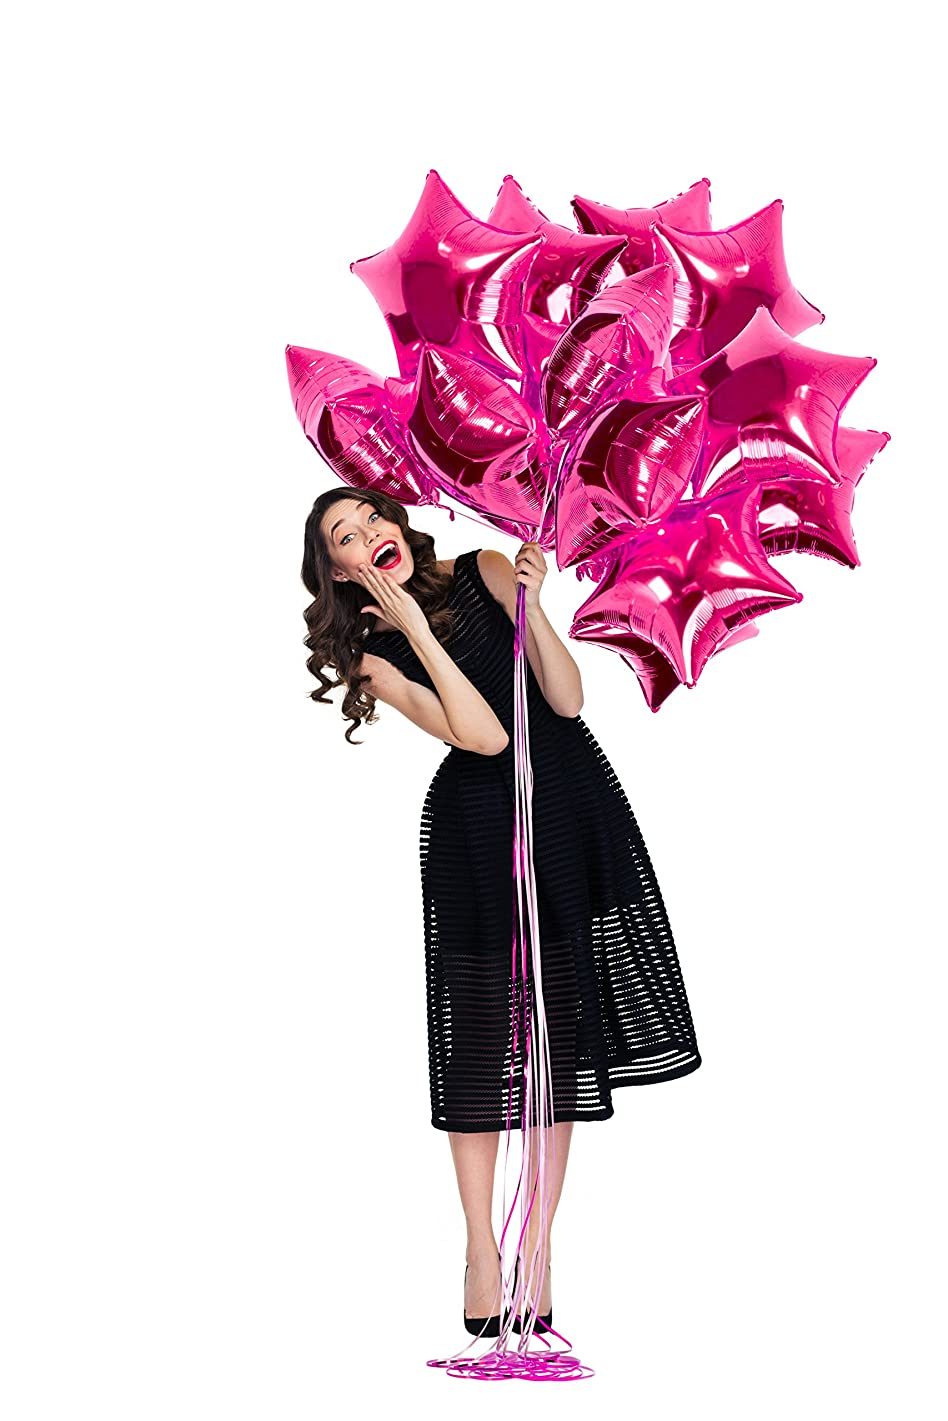 Treasures Gifted Valentines Magenta Pink Star Foil Balloons Kit for Girl Baby Shower Sweet 16 Birthday Bachelorette Wedding Anniversary Party Decorations (12 Pack)